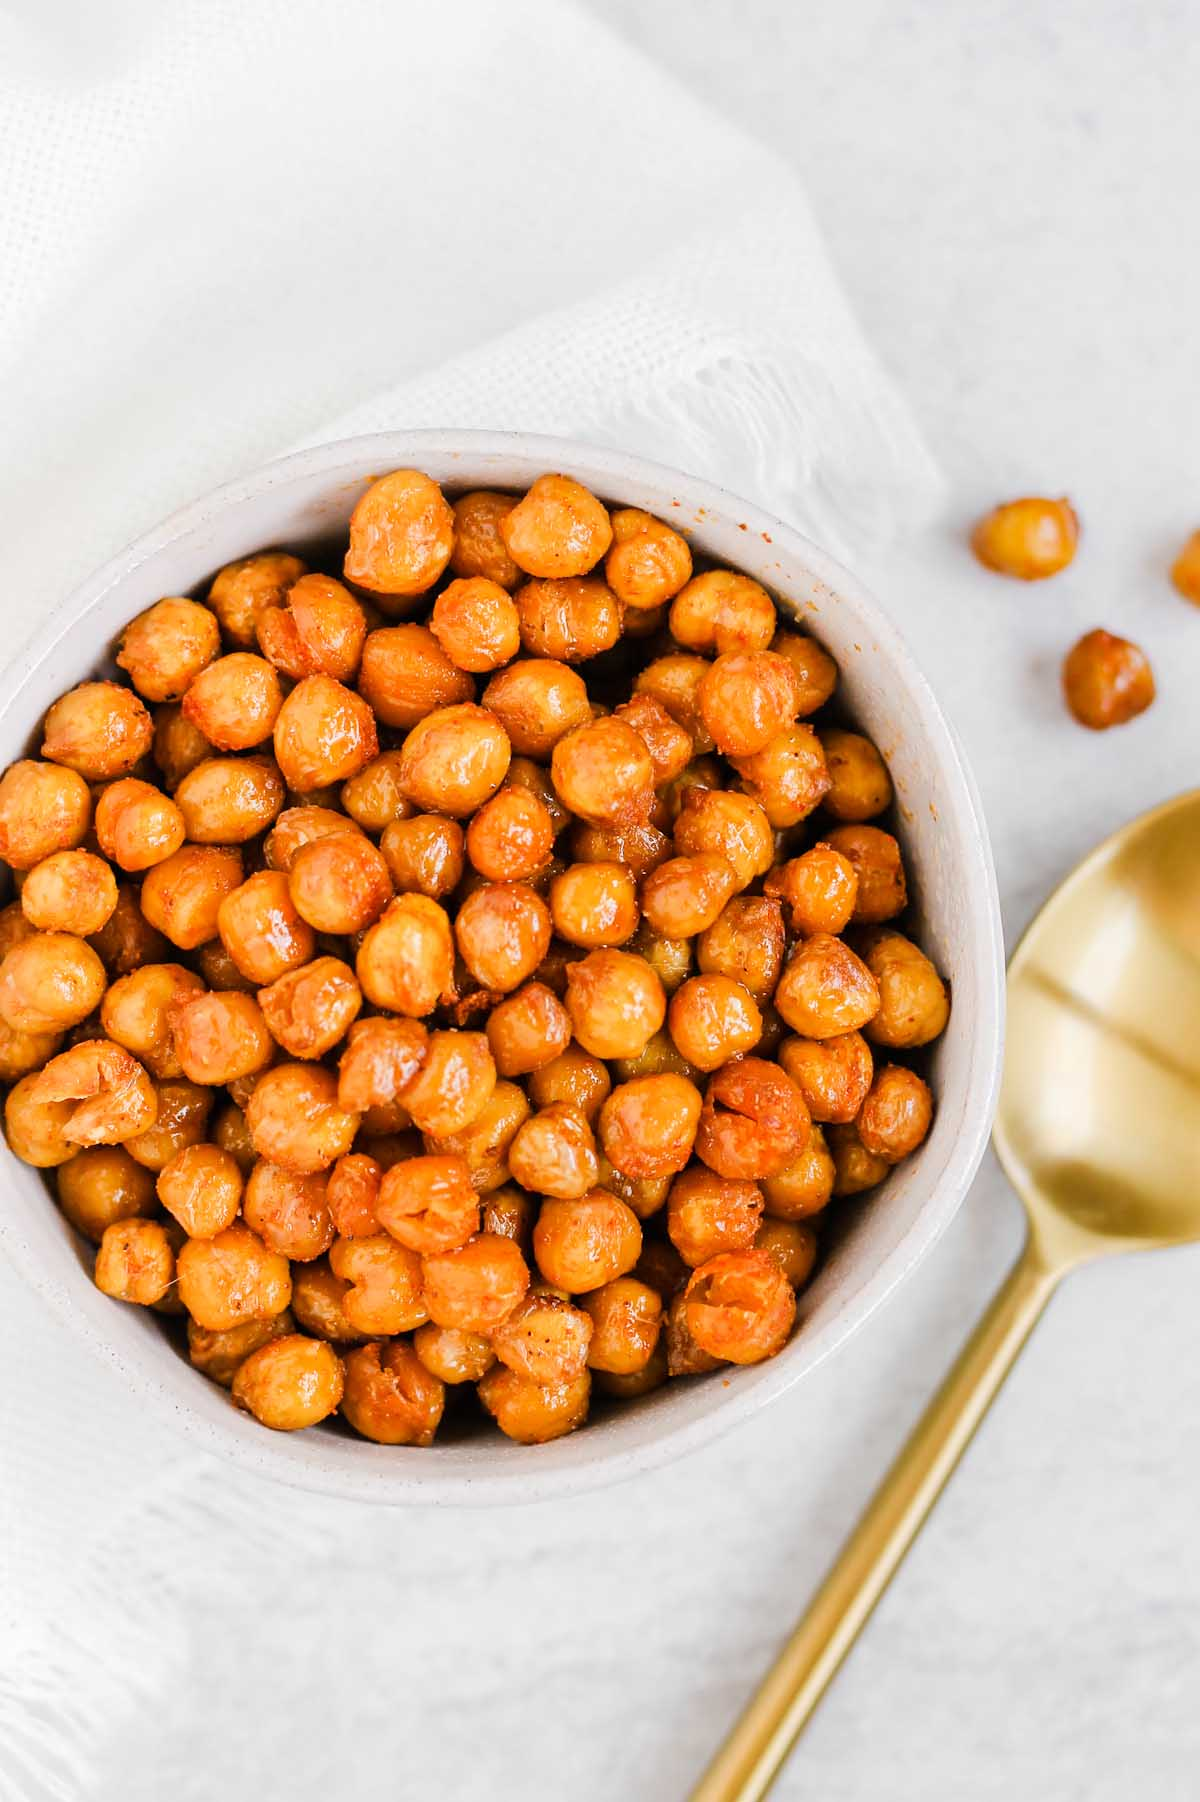 Roasted chickpeas in a white bowl.